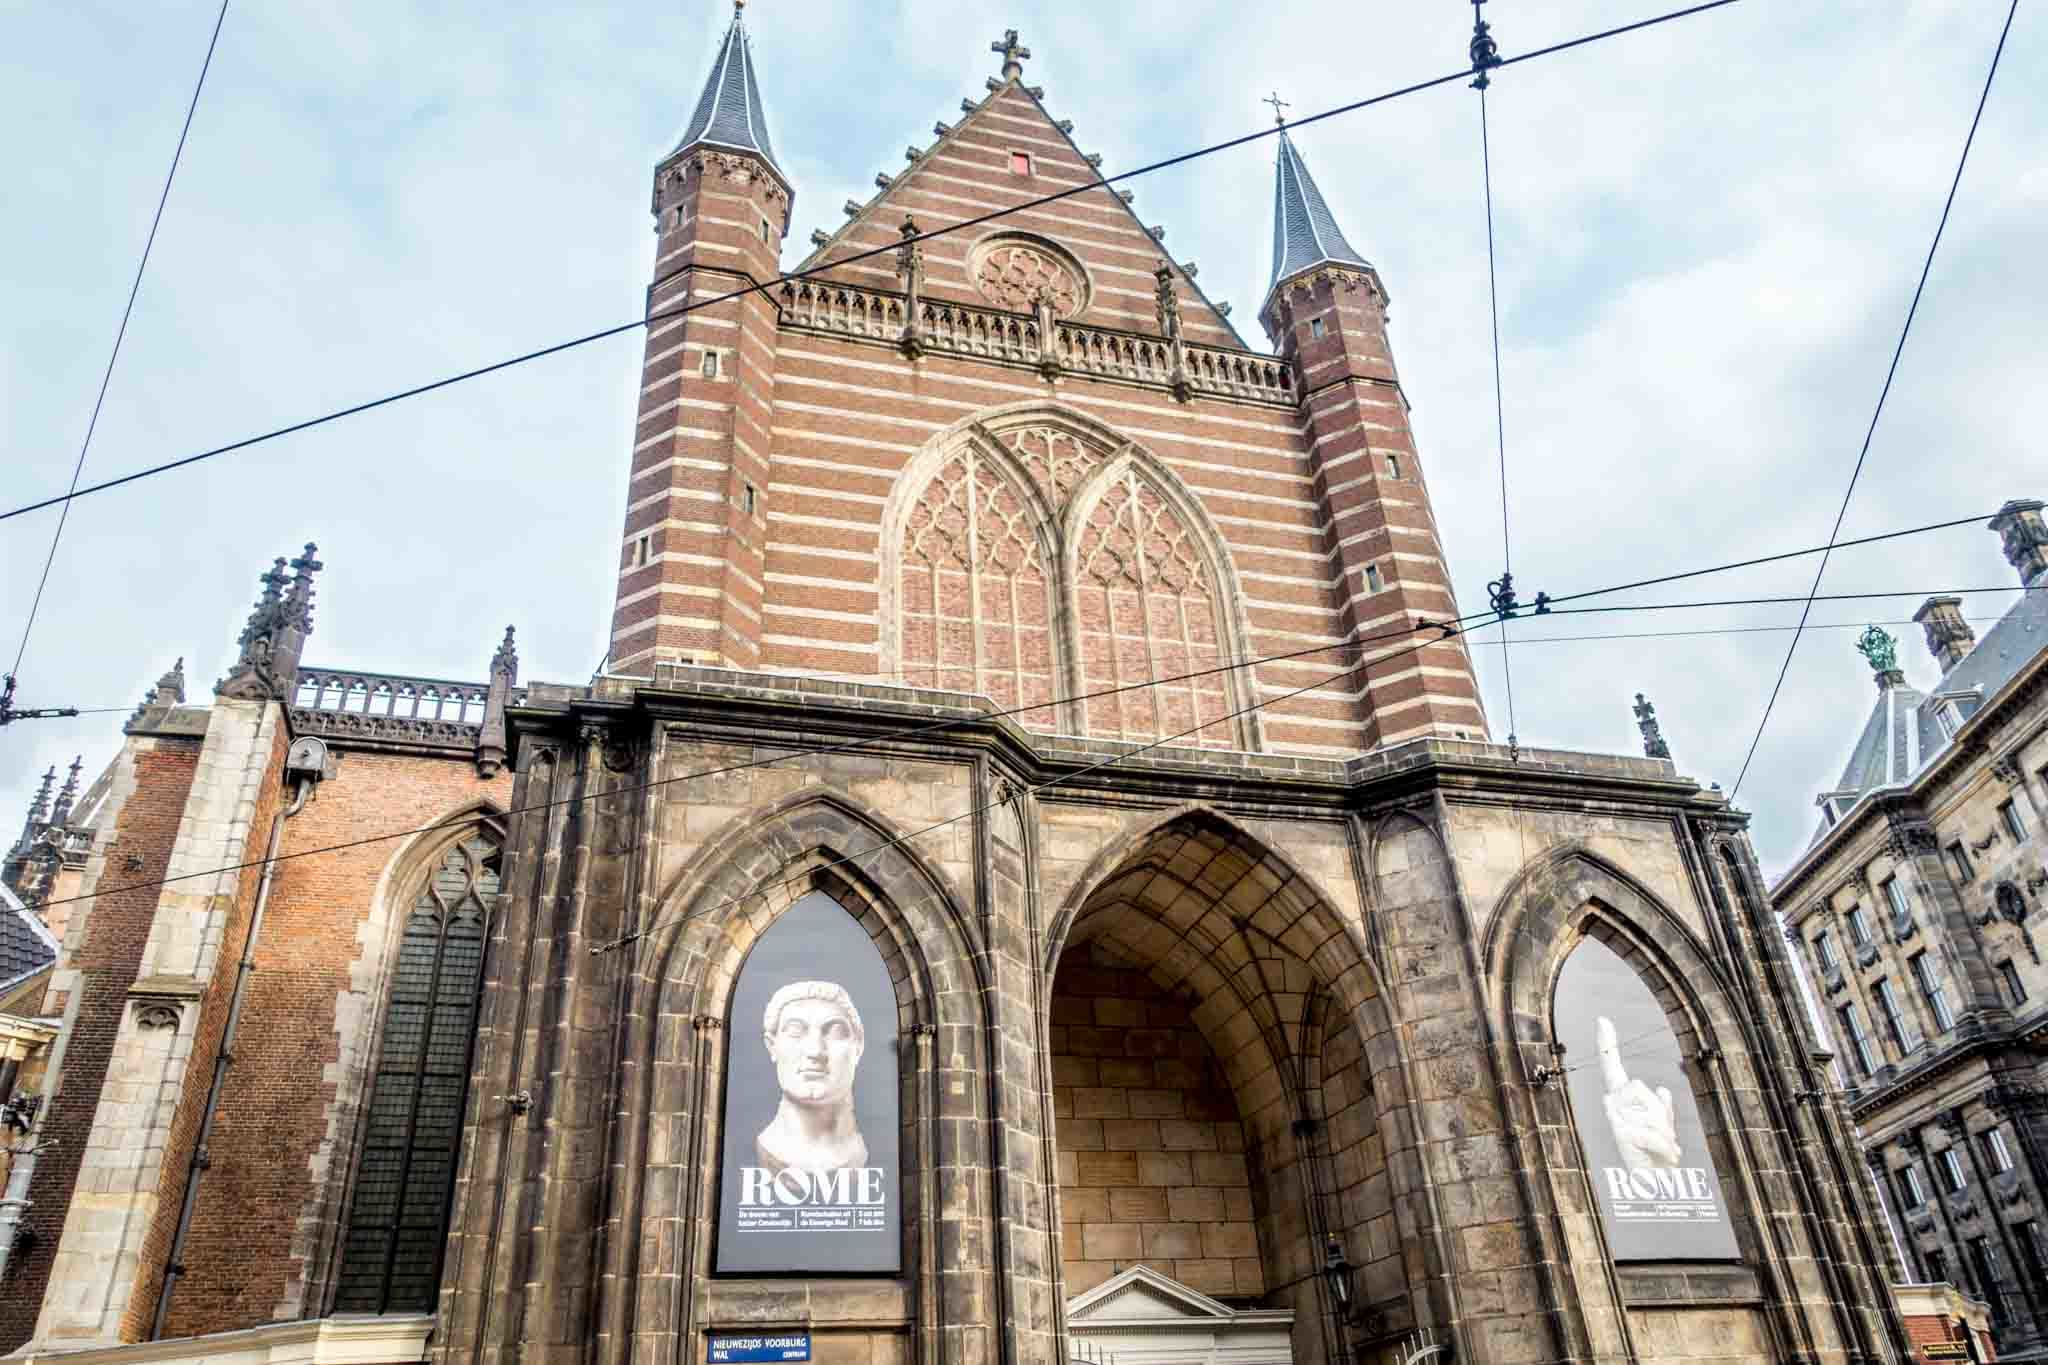 Church with posters advertising an exhibit inside